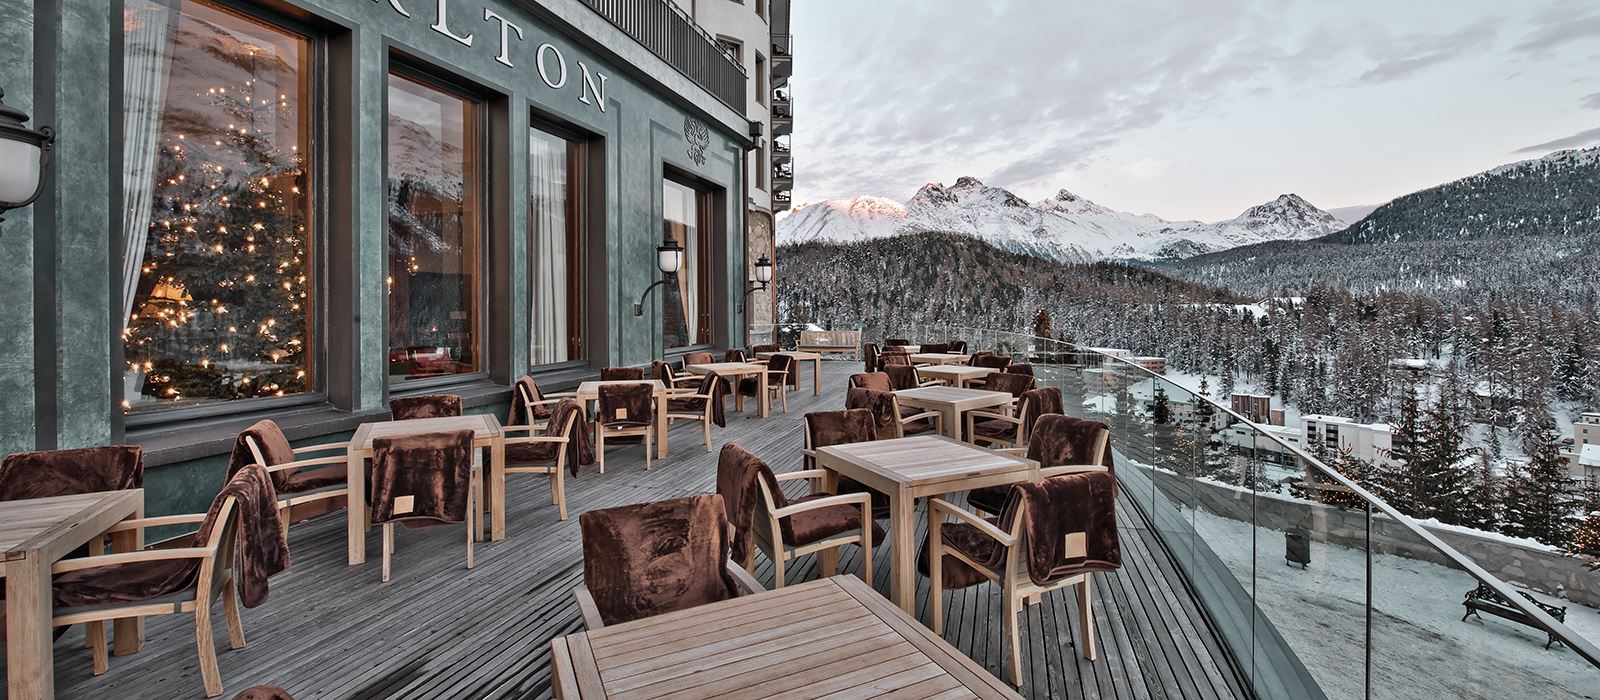 (Photo courtesy of Carlton Hotel St. Moritz)